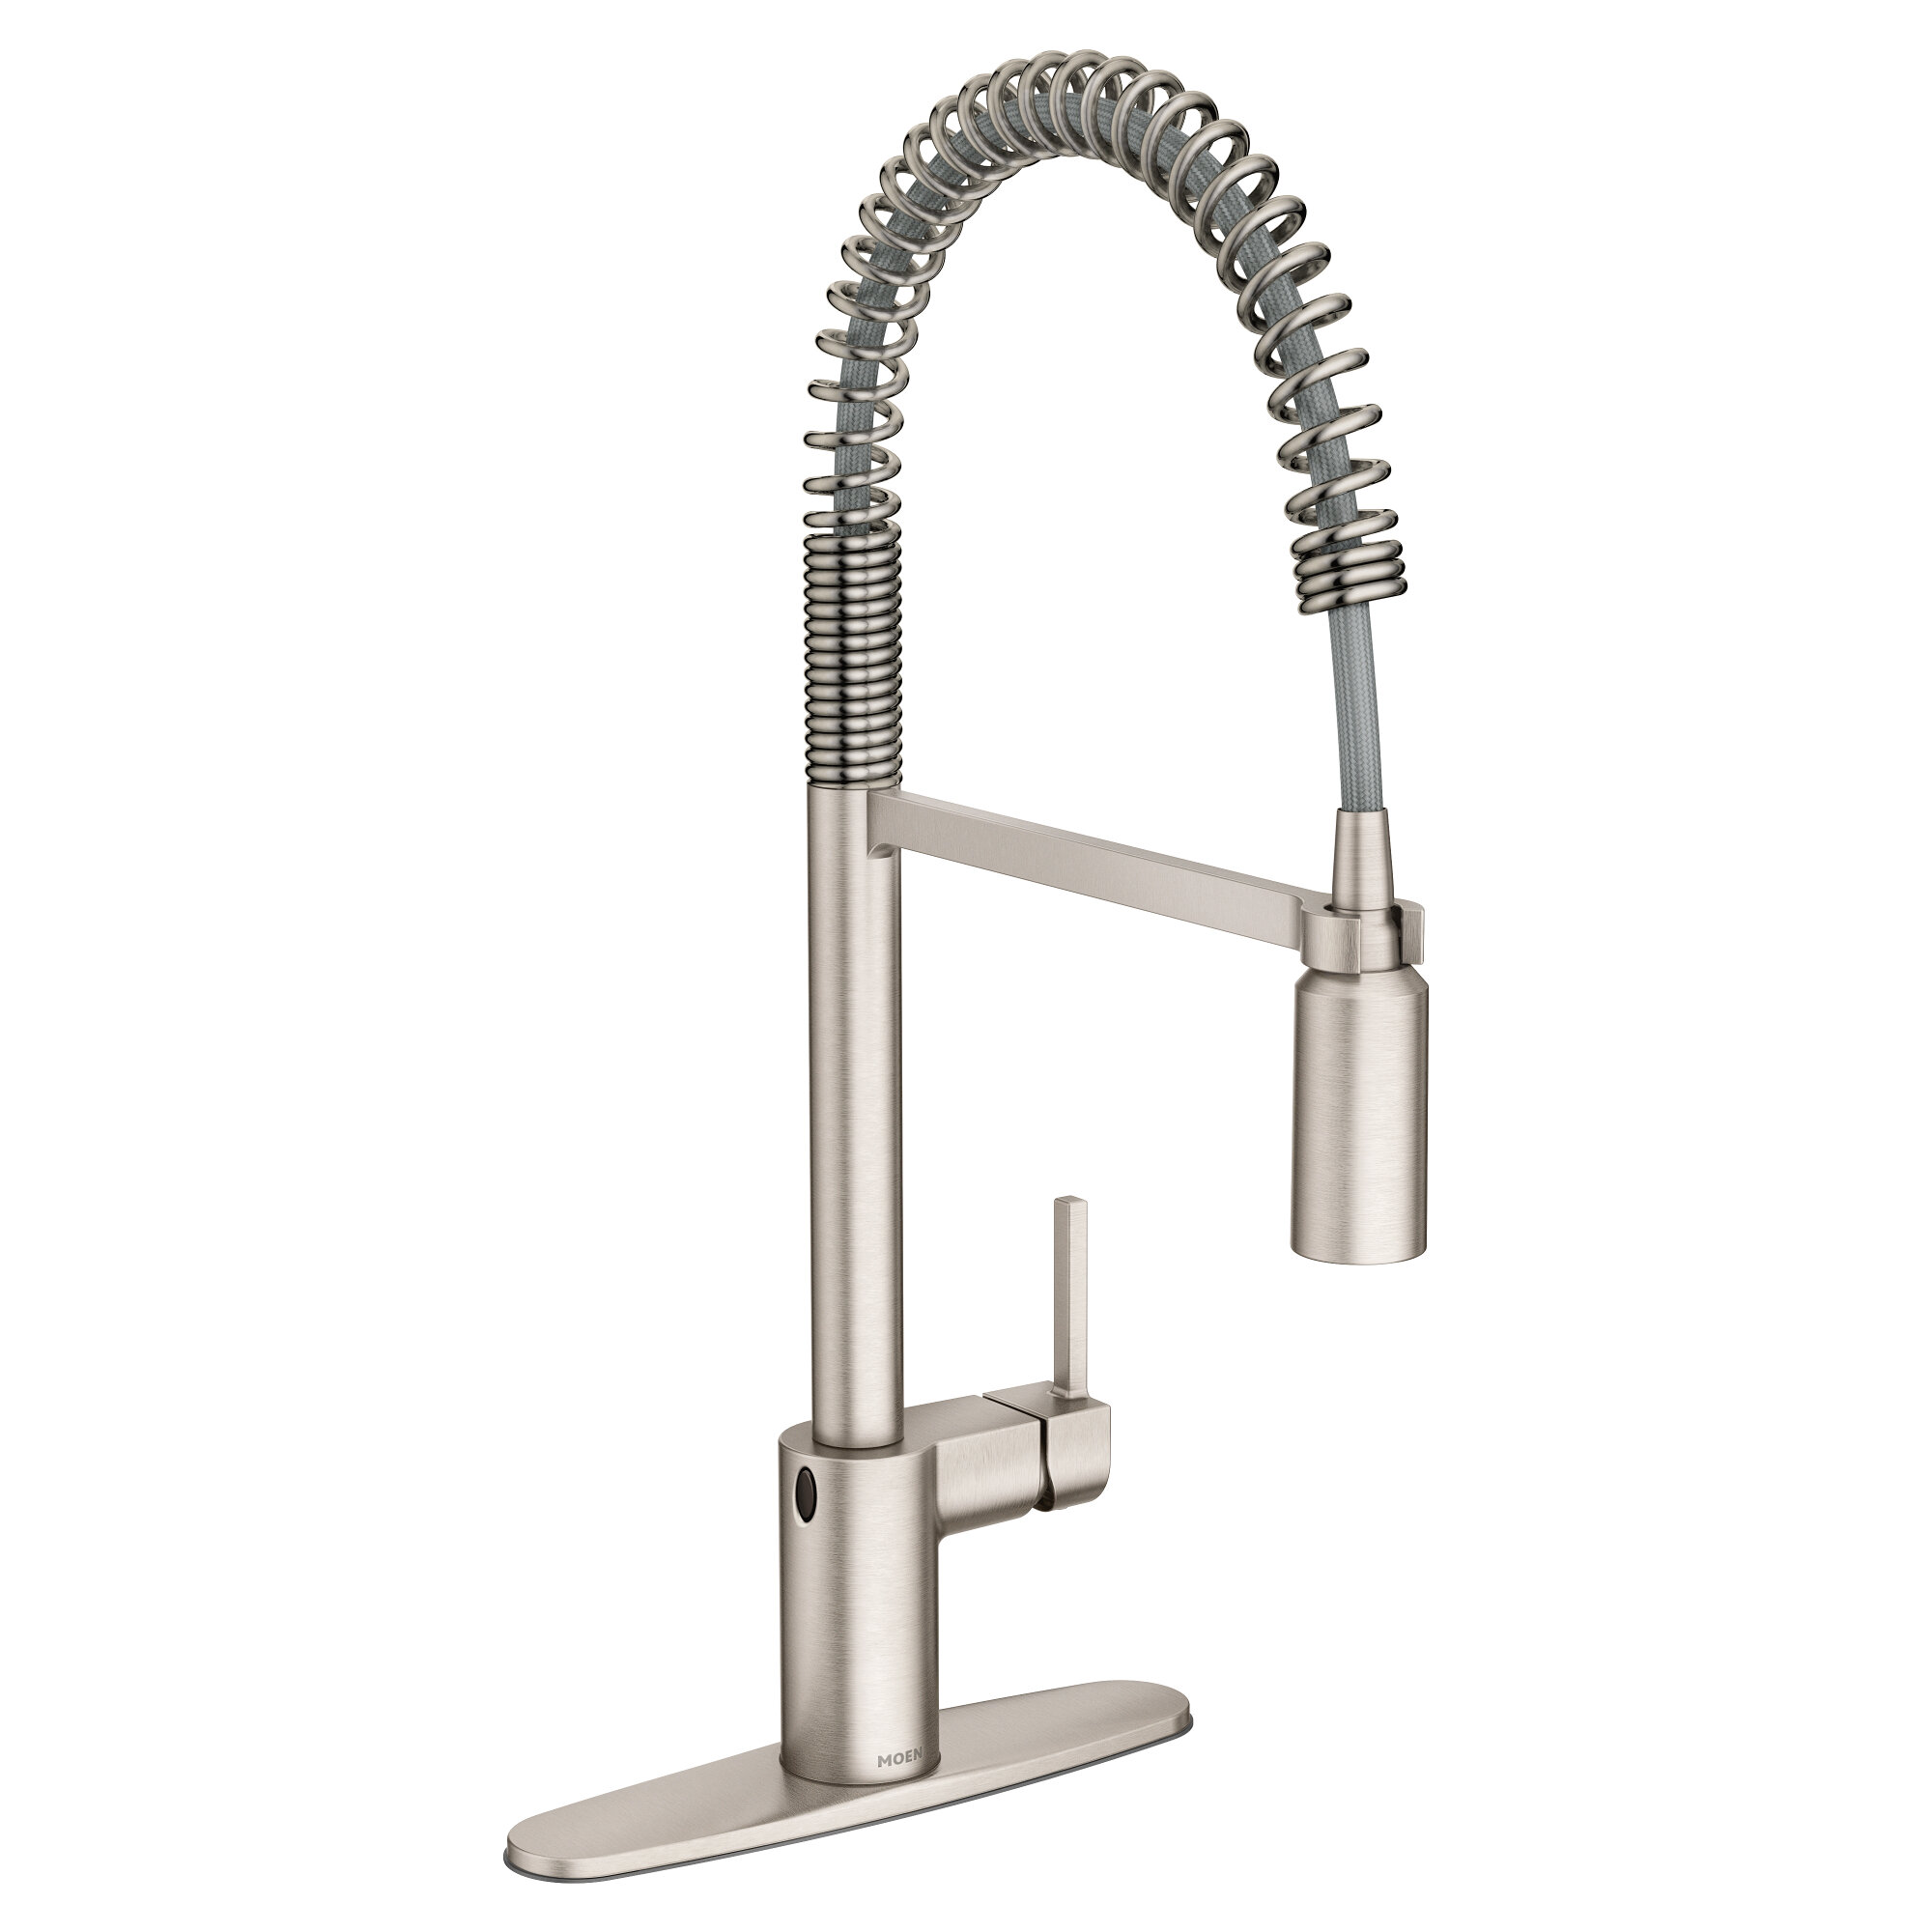 down on all best pull touchless metal bathroom steel solid faucets kitchen faucet stainless